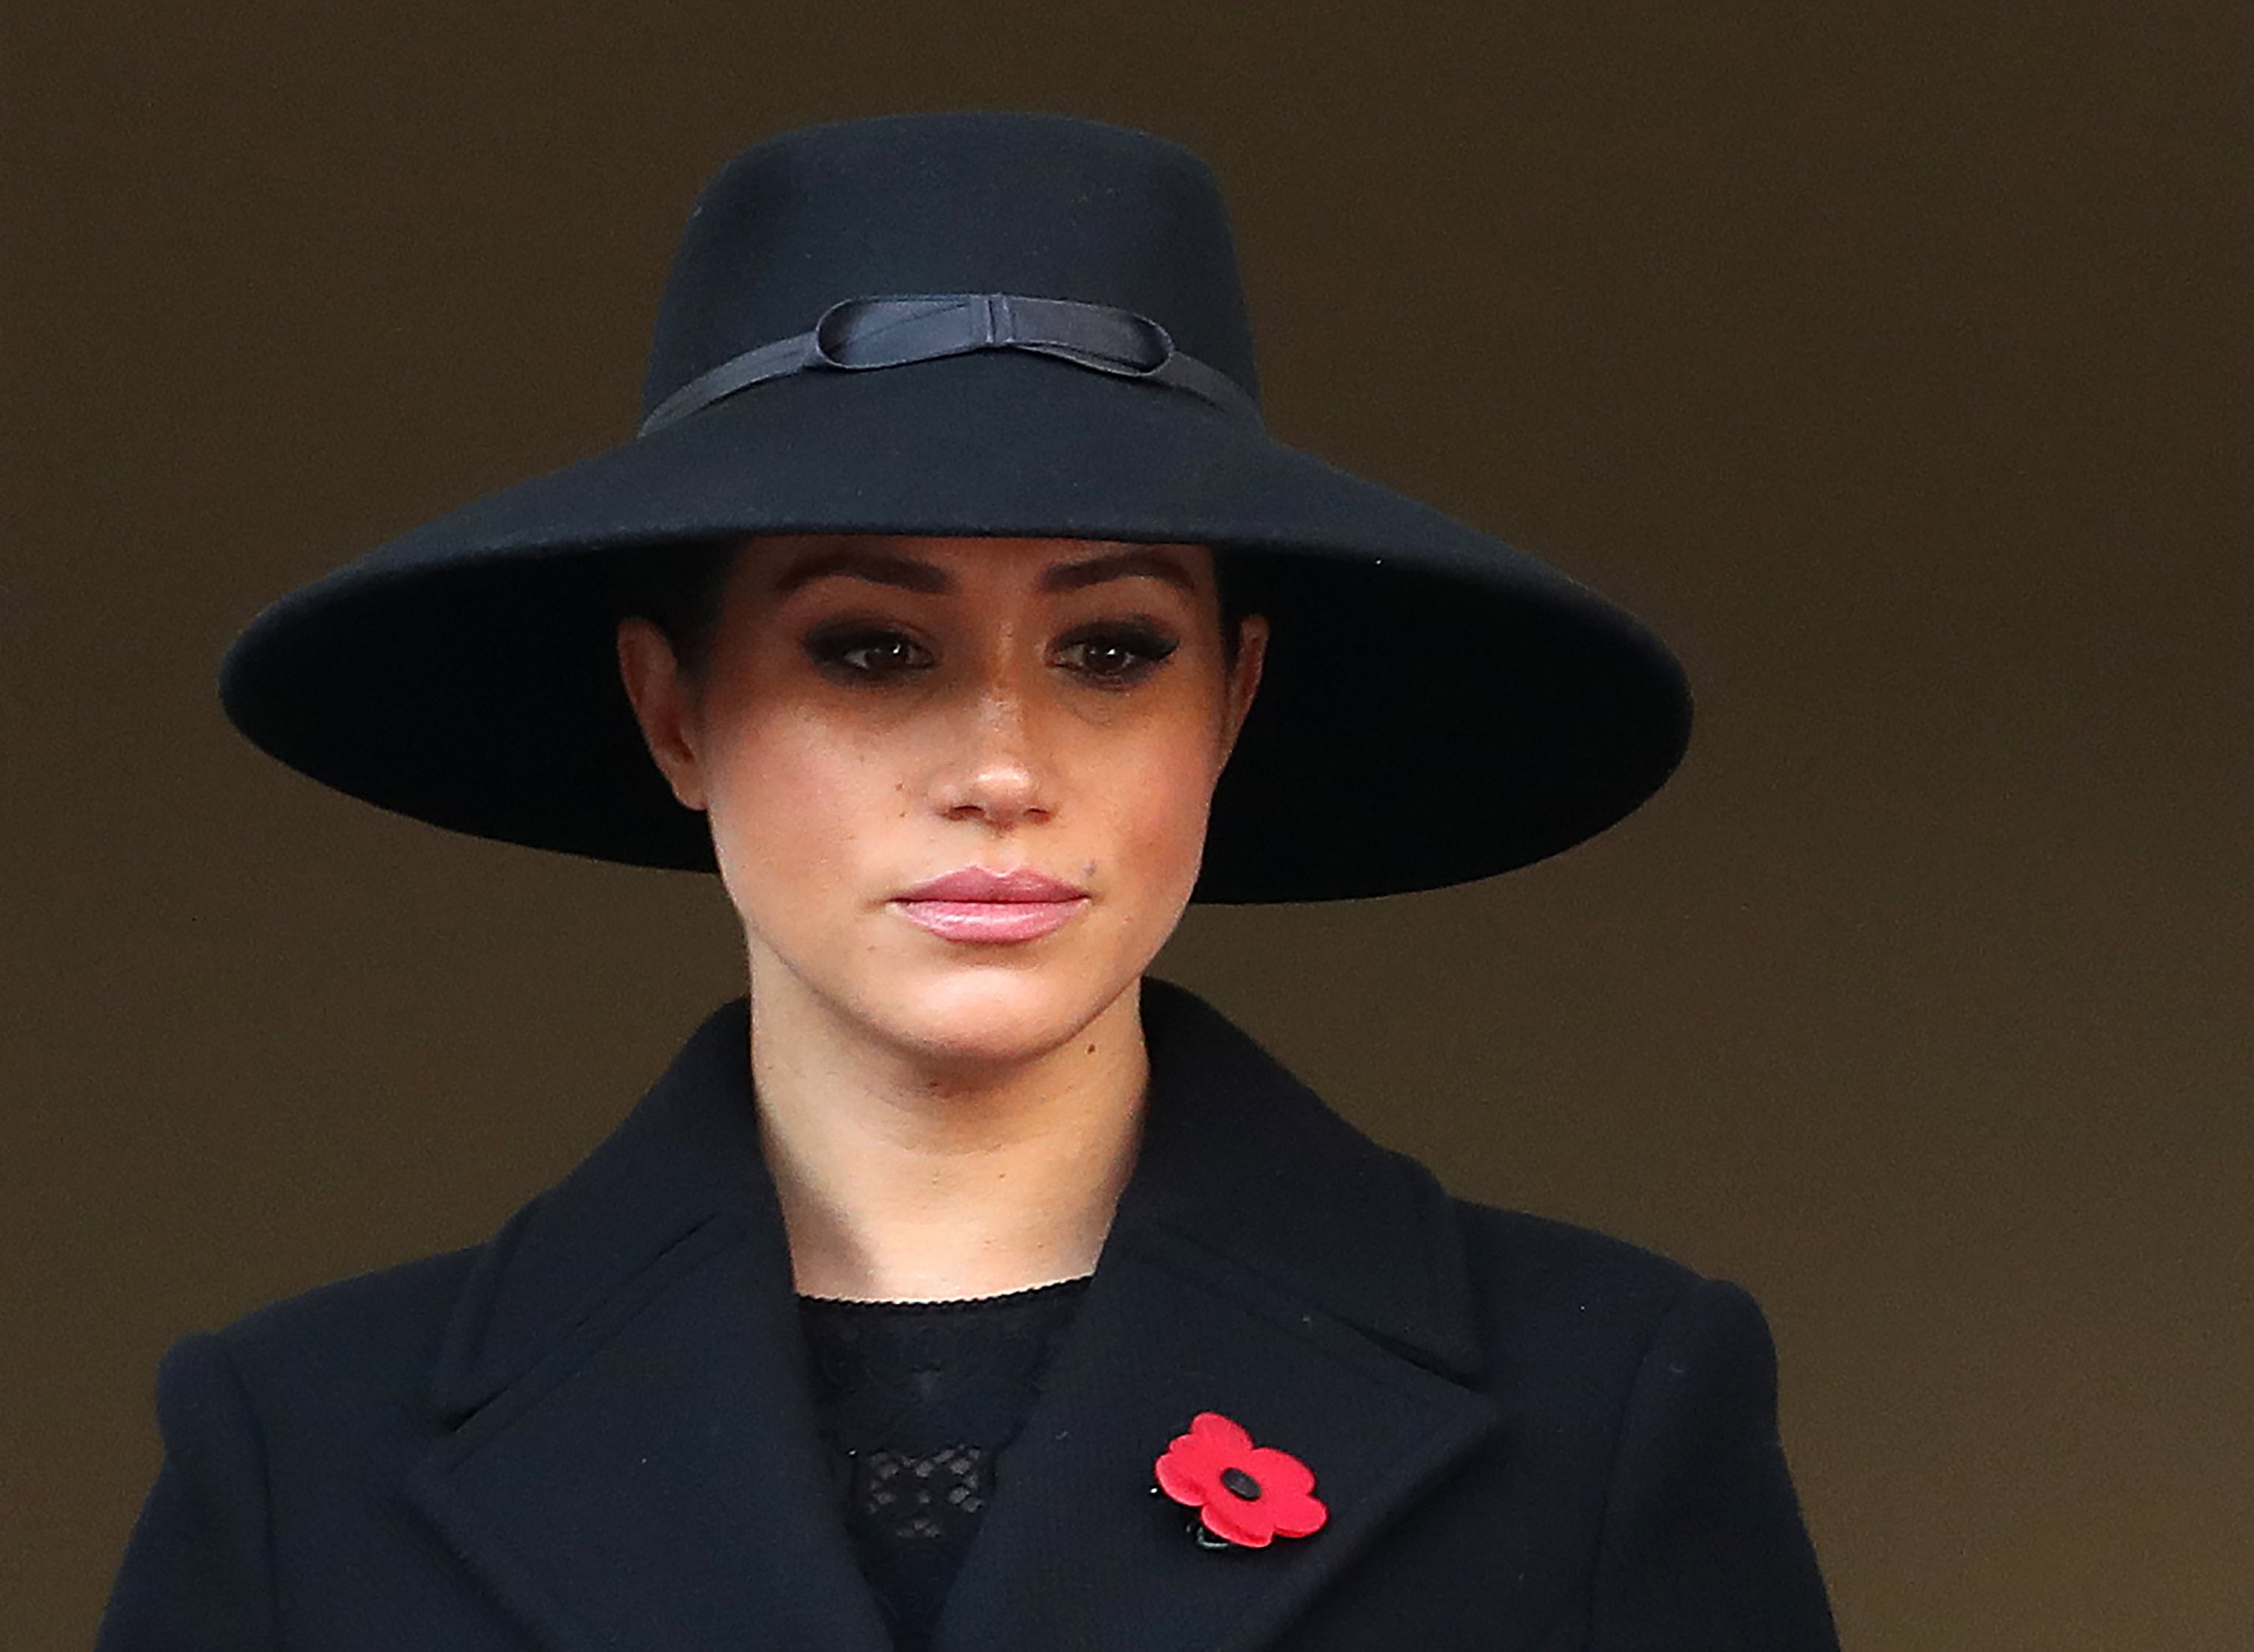 Meghan, Duchess of Sussex attends the annual Remembrance Sunday memorial at The Cenotaph on November 10, 2019, in London, England. | Source: Getty Images.